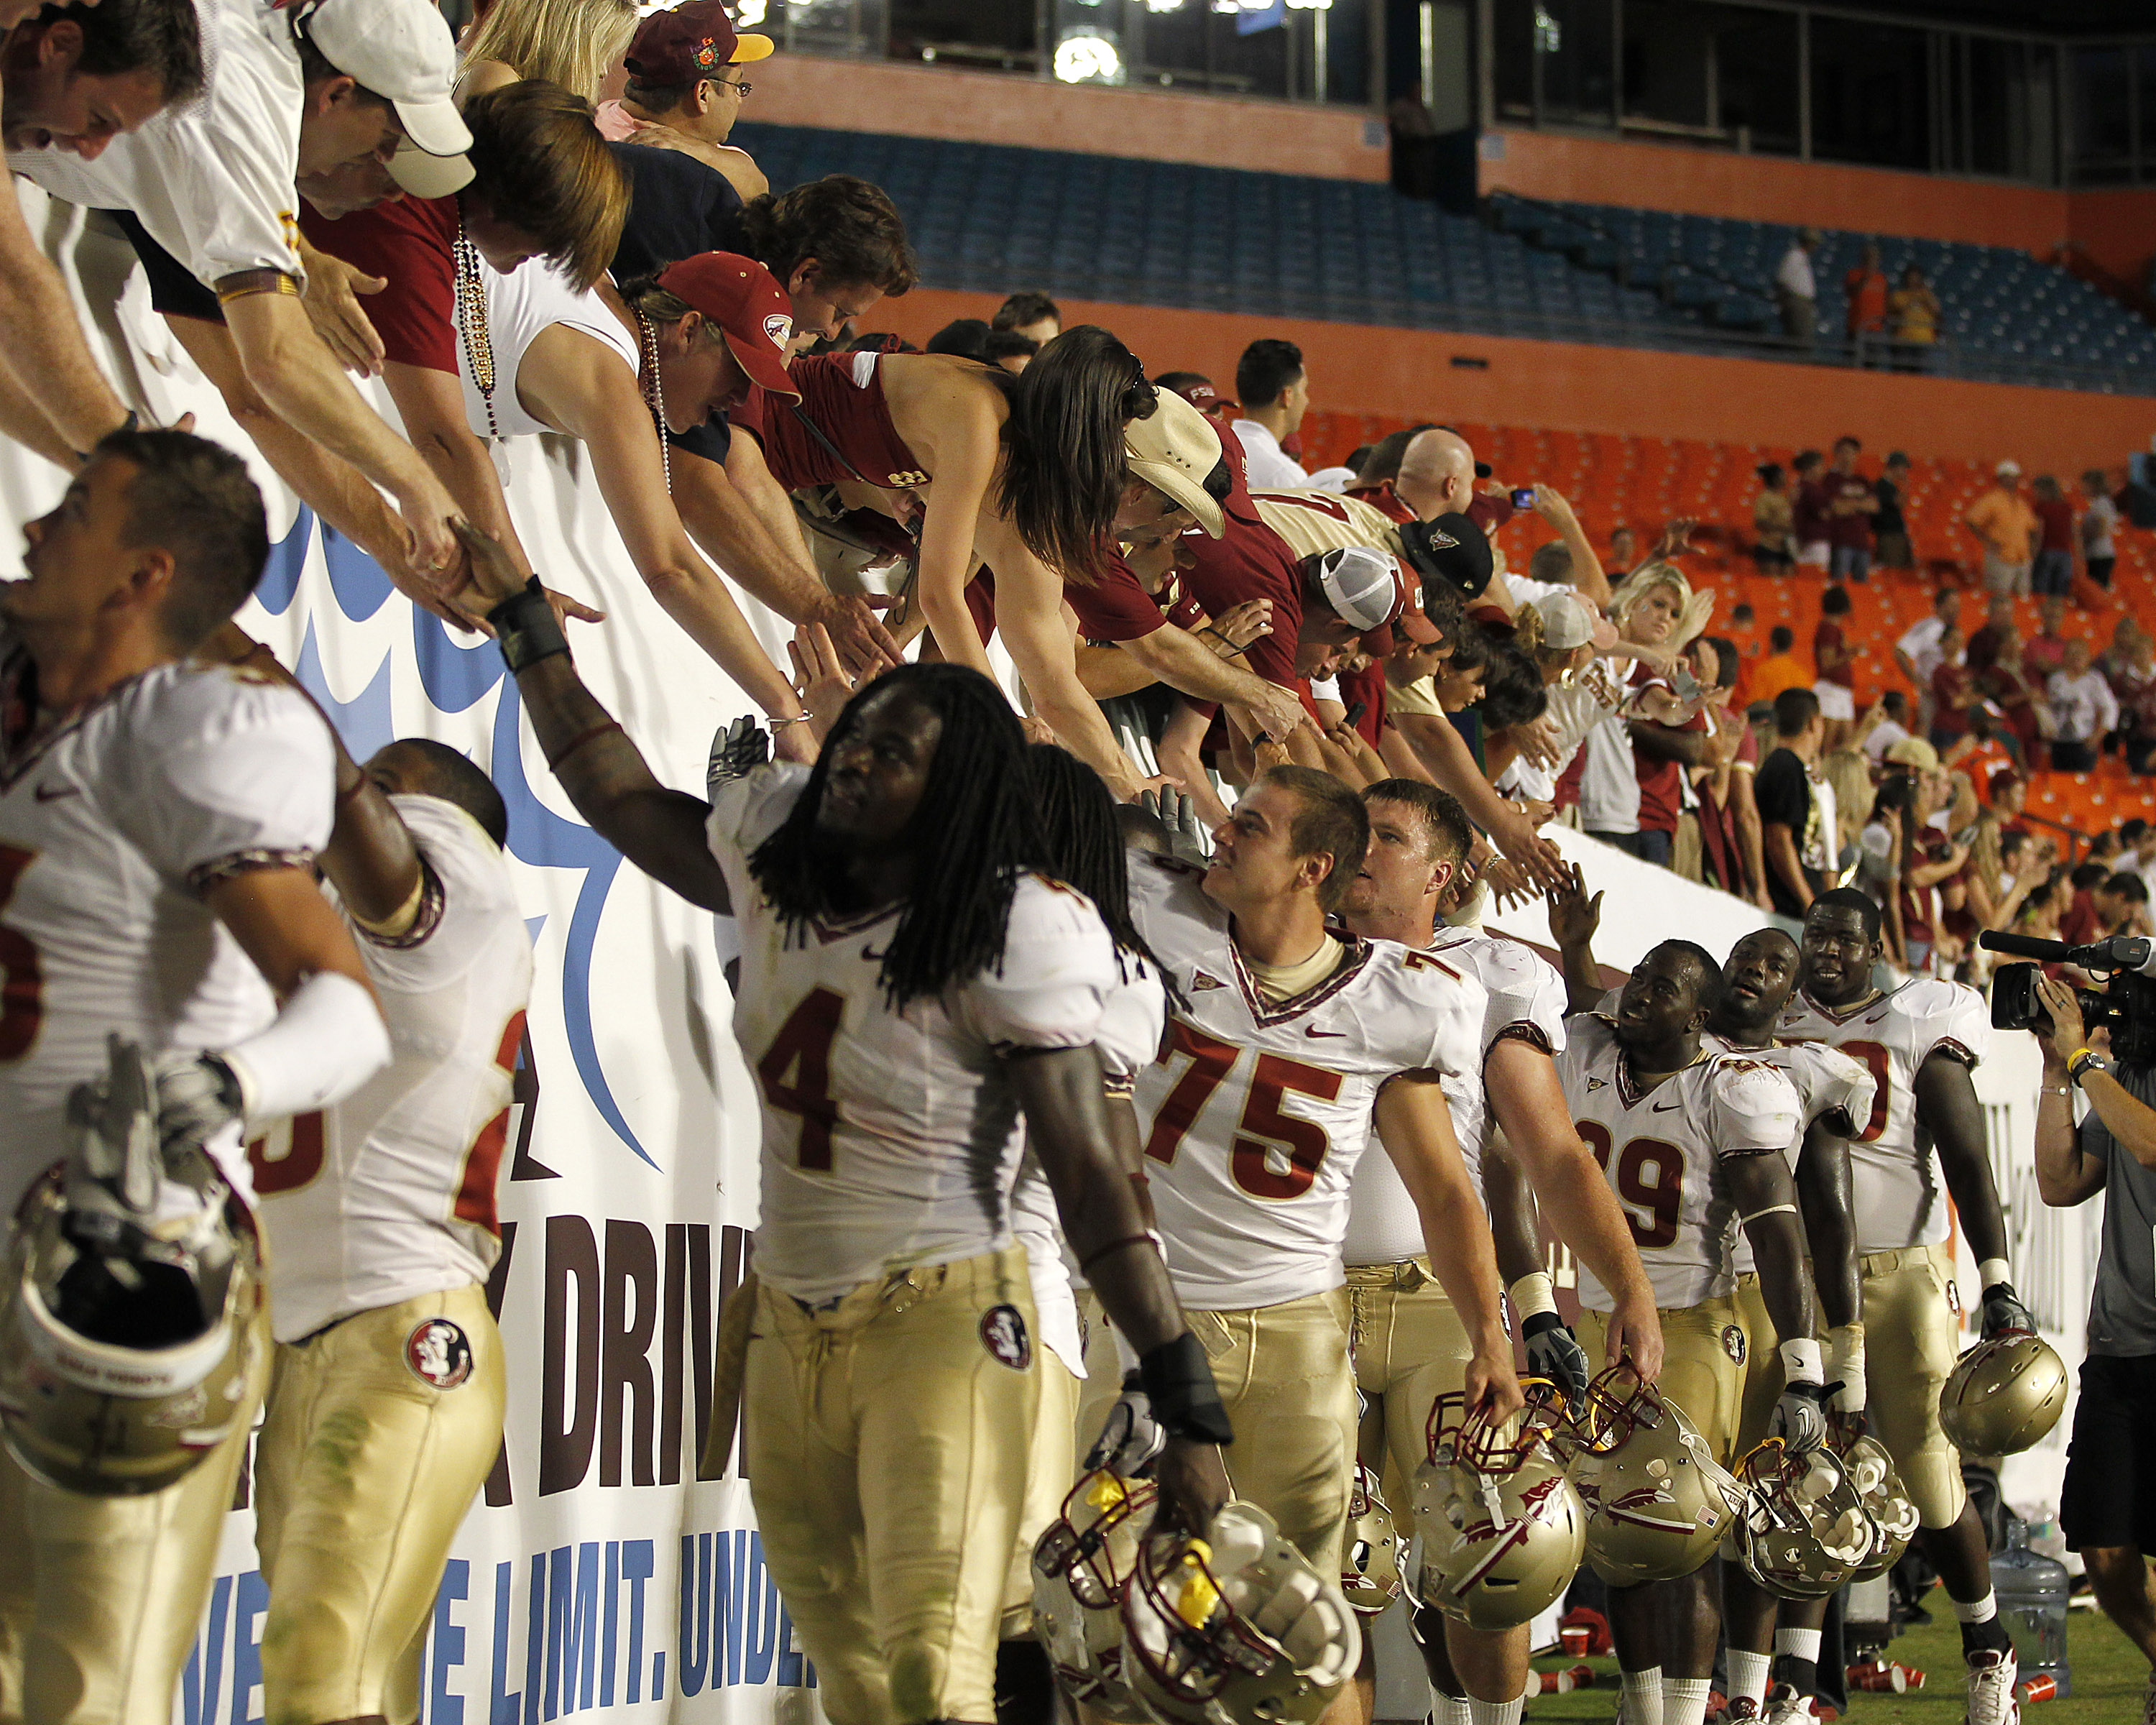 MIAMI, FL - OCTOBER 9: Florida State Seminoles fans celebrate the 45-17 victory against the Miami Hurricanes with members of the team on October 9, 2010 at Sun Life Stadium in Miami, Florida. (Photo by Joel Auerbach/Getty Images)